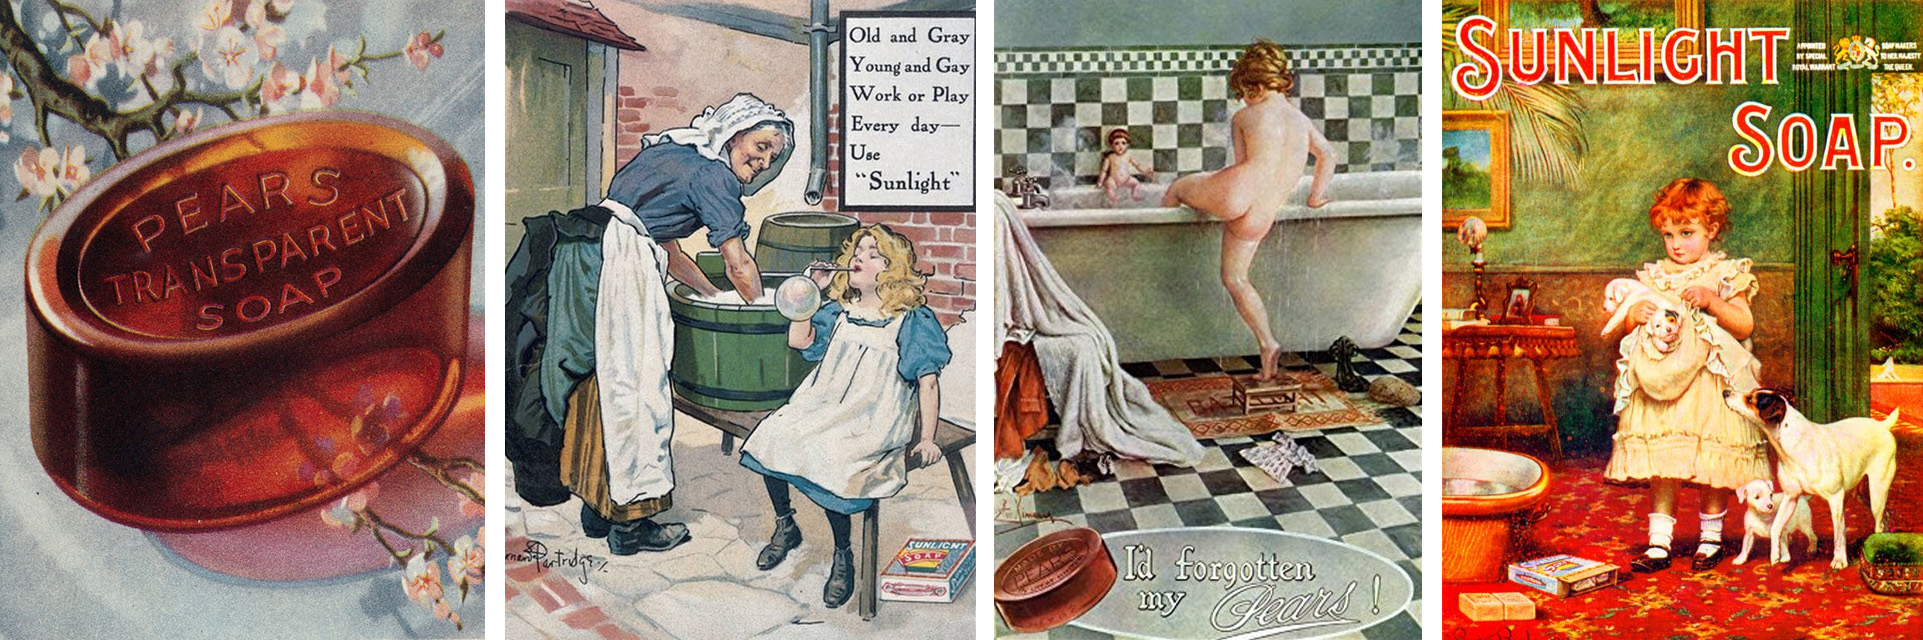 Jupiter Soaps - Vintage Adverts